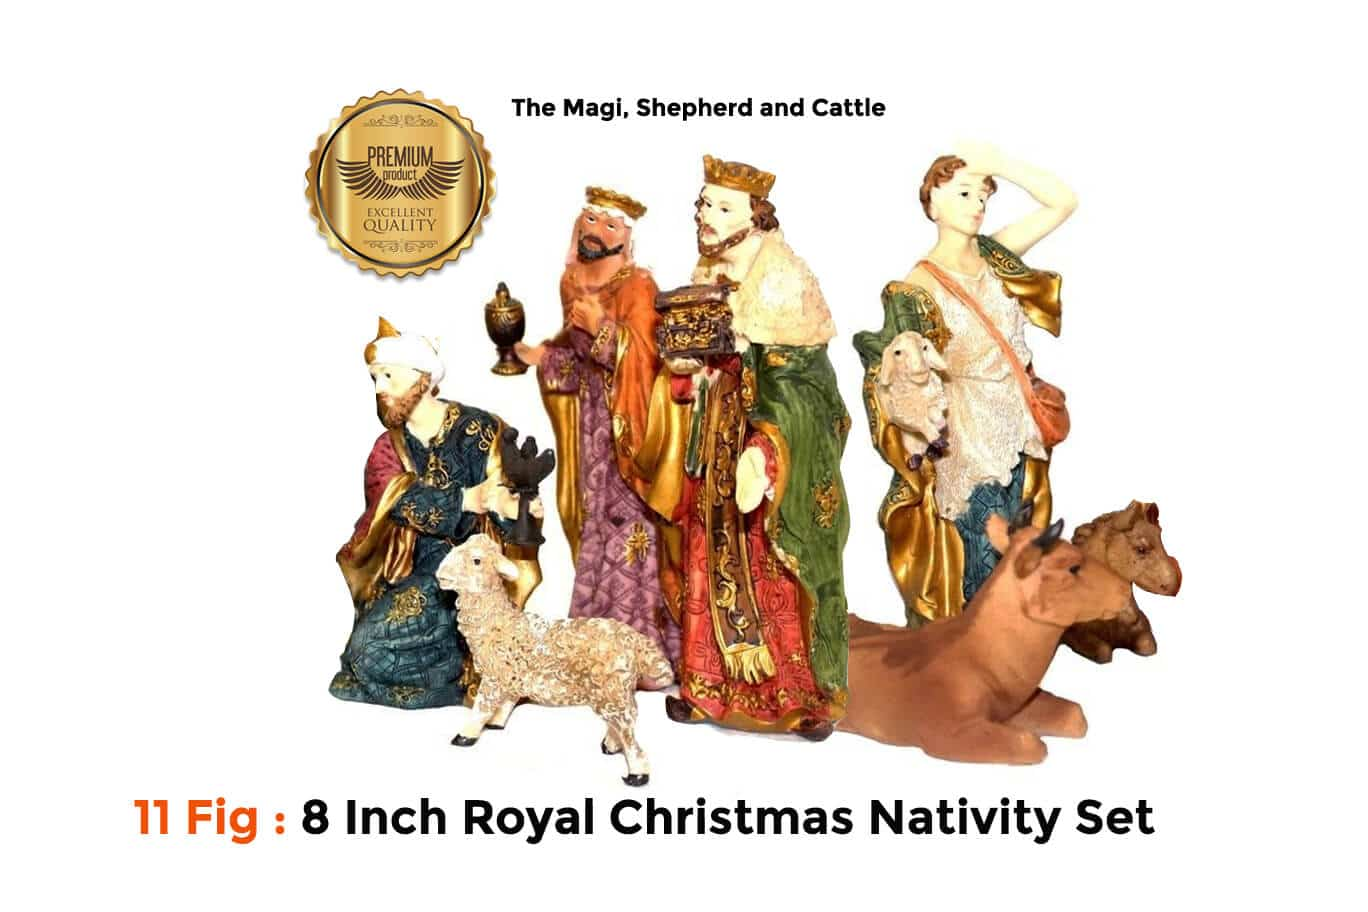 Jesuskart 8 Inch Royal Nativvity Set-11 fig-Kings cattle and shepherd